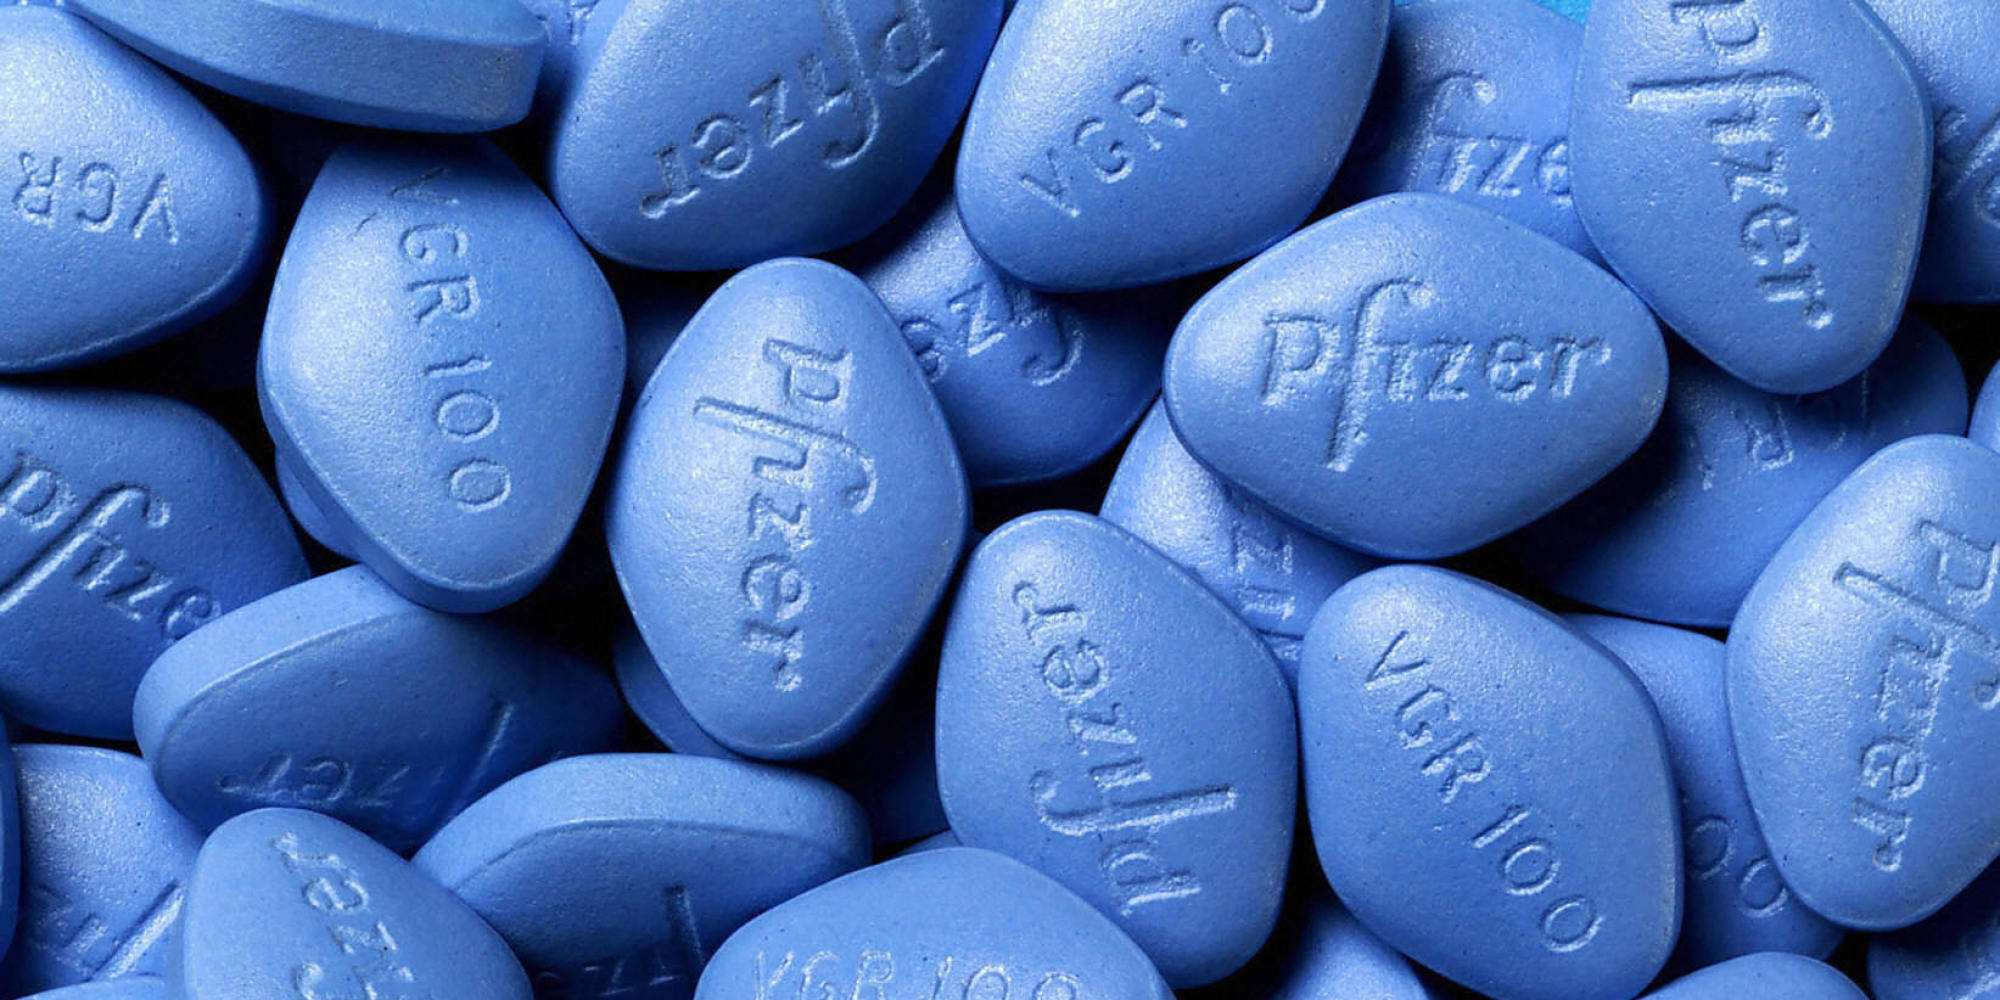 (FILES)This undated file photo shows Viagra pills made by Pfizer. CIA agents are offering the potency drug Viagra and other gifts to win over Afghan warlords in the US-led war against Taliban insurgents, the Washington Post reported on December 26, 2008. Paying for information is nothing new for the Central Intelligence Agency, but officers have started employing unusual incentives to persuade Afghan local leaders to share intelligence about the Taliban's movements, the Post wrote, citing unnamed sources in the spy service. AFP PHOTO/HANDOUT/RESTRICTED TO EDITORIAL USE =GETTY OUT=